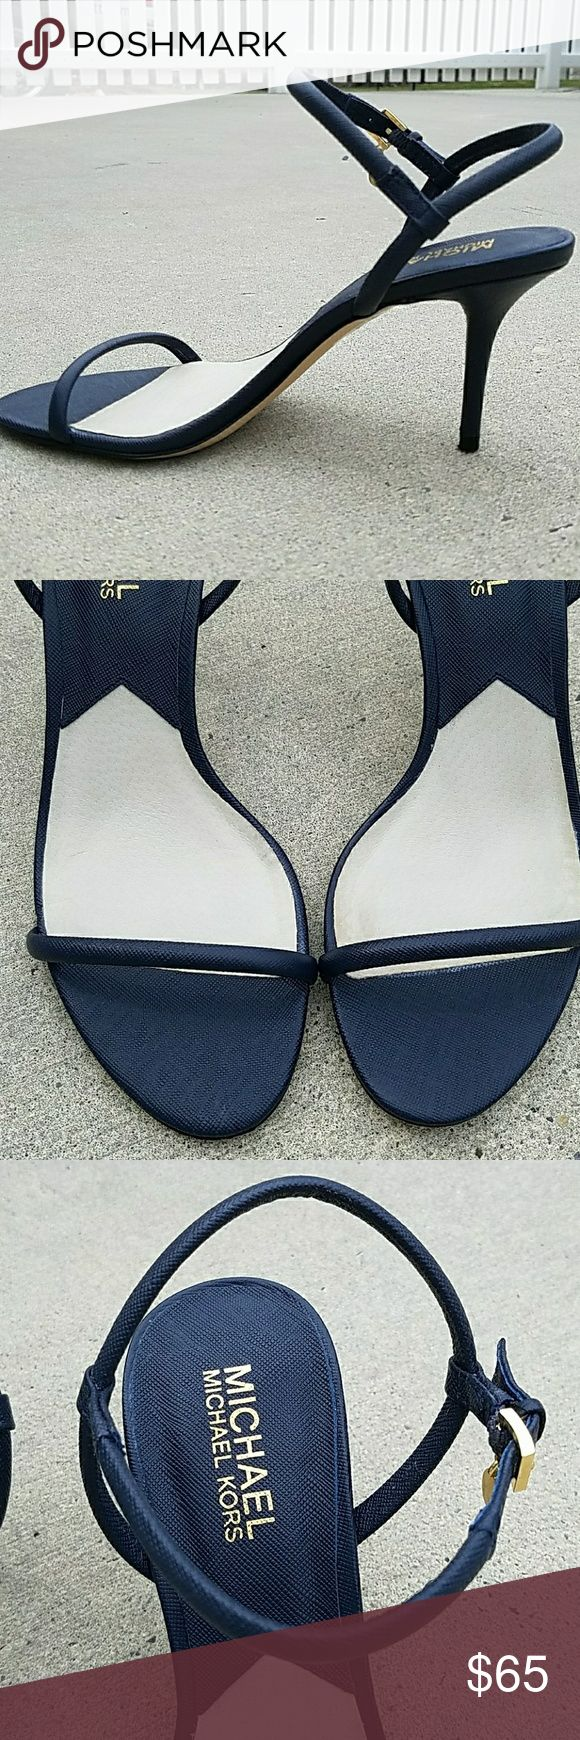 """Michael Kors Navy Blue Sandals Heels Sexy heels from Michael Kors. Navy Blue with adjustable buckle strap. Has the MK gold emblem that dangles from the strap. Great used condition. About a 3"""" heel. Michael Kors Shoes Sandals"""